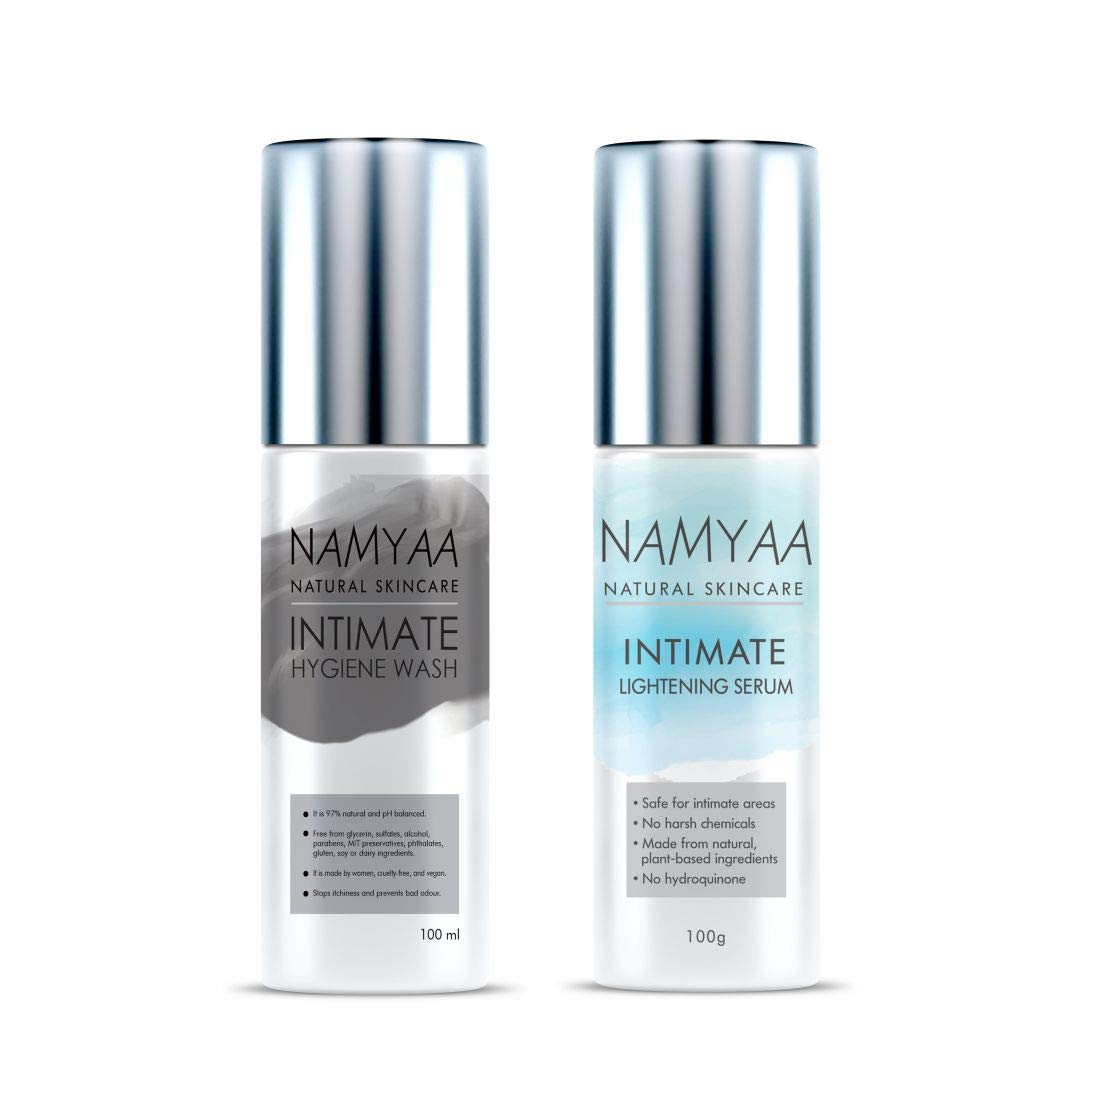 Namyaa Intimate Set (Intimate Lightening Serum, 100 g and Intimate Hygiene Wash for Men and Women, 100 g)